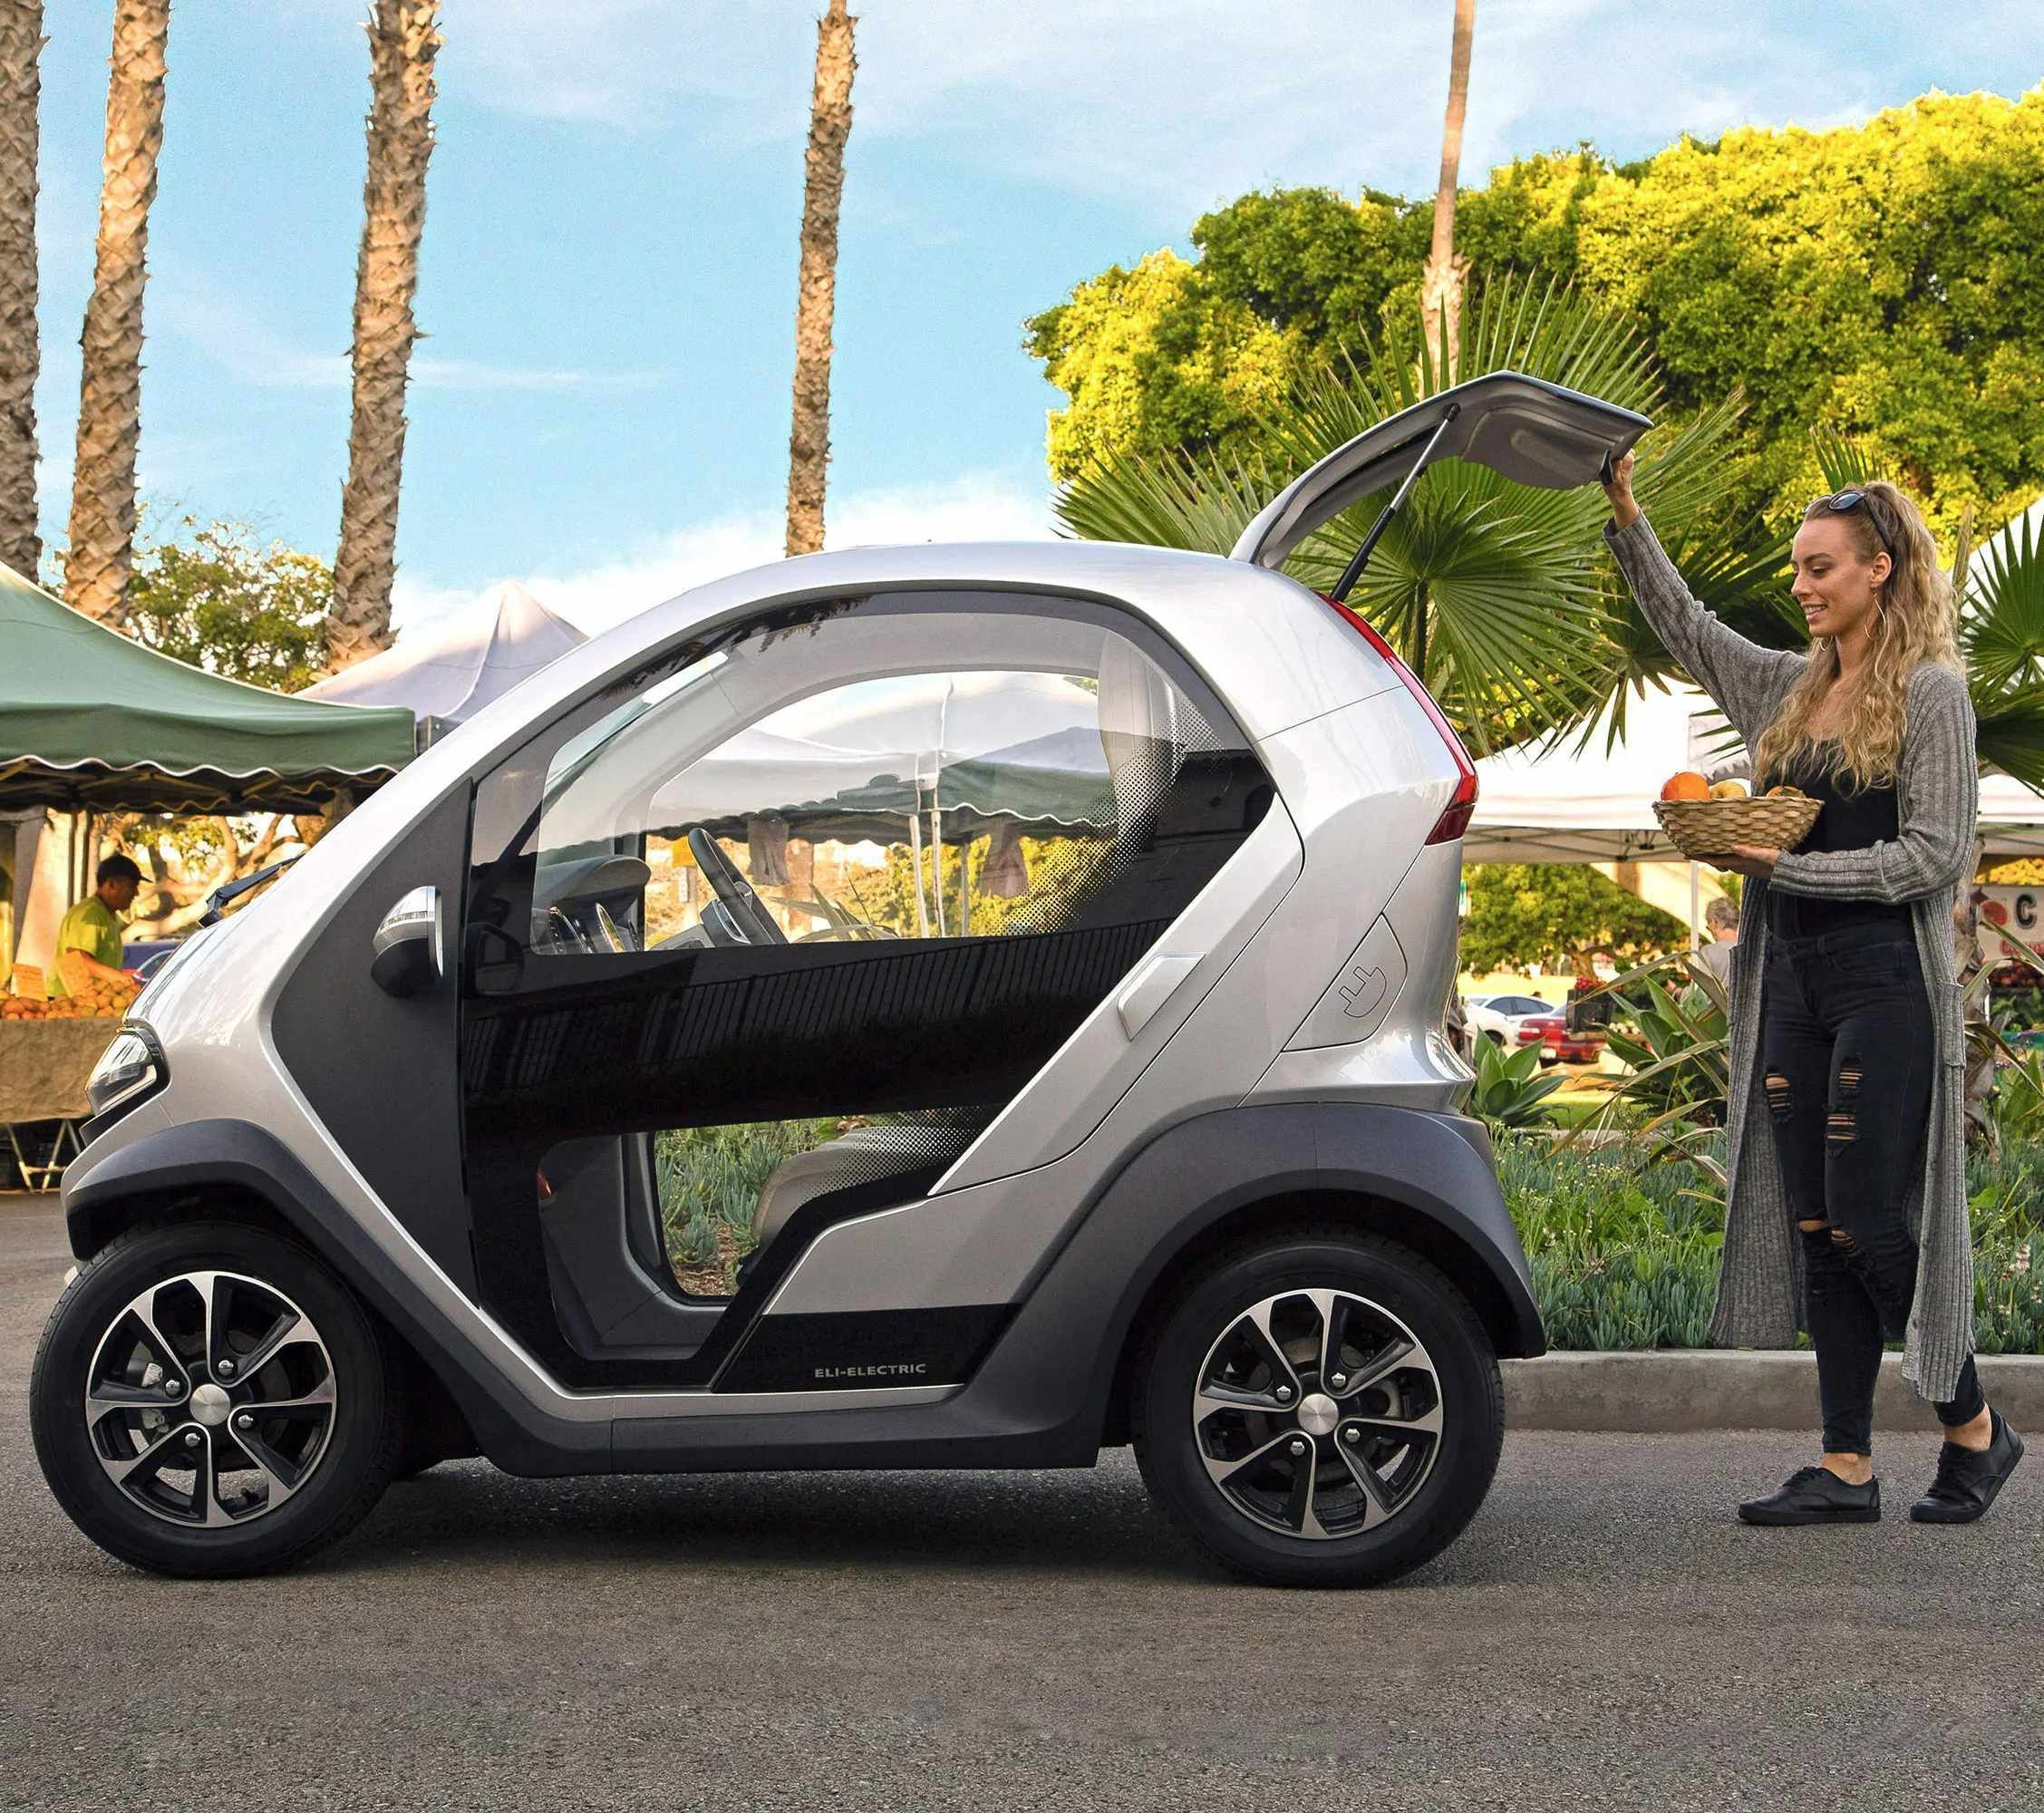 The Eli ZERO is an all-electric micro-car designed to explode preconceived notions about what a car for an urban environment should be. #ev #electriccar